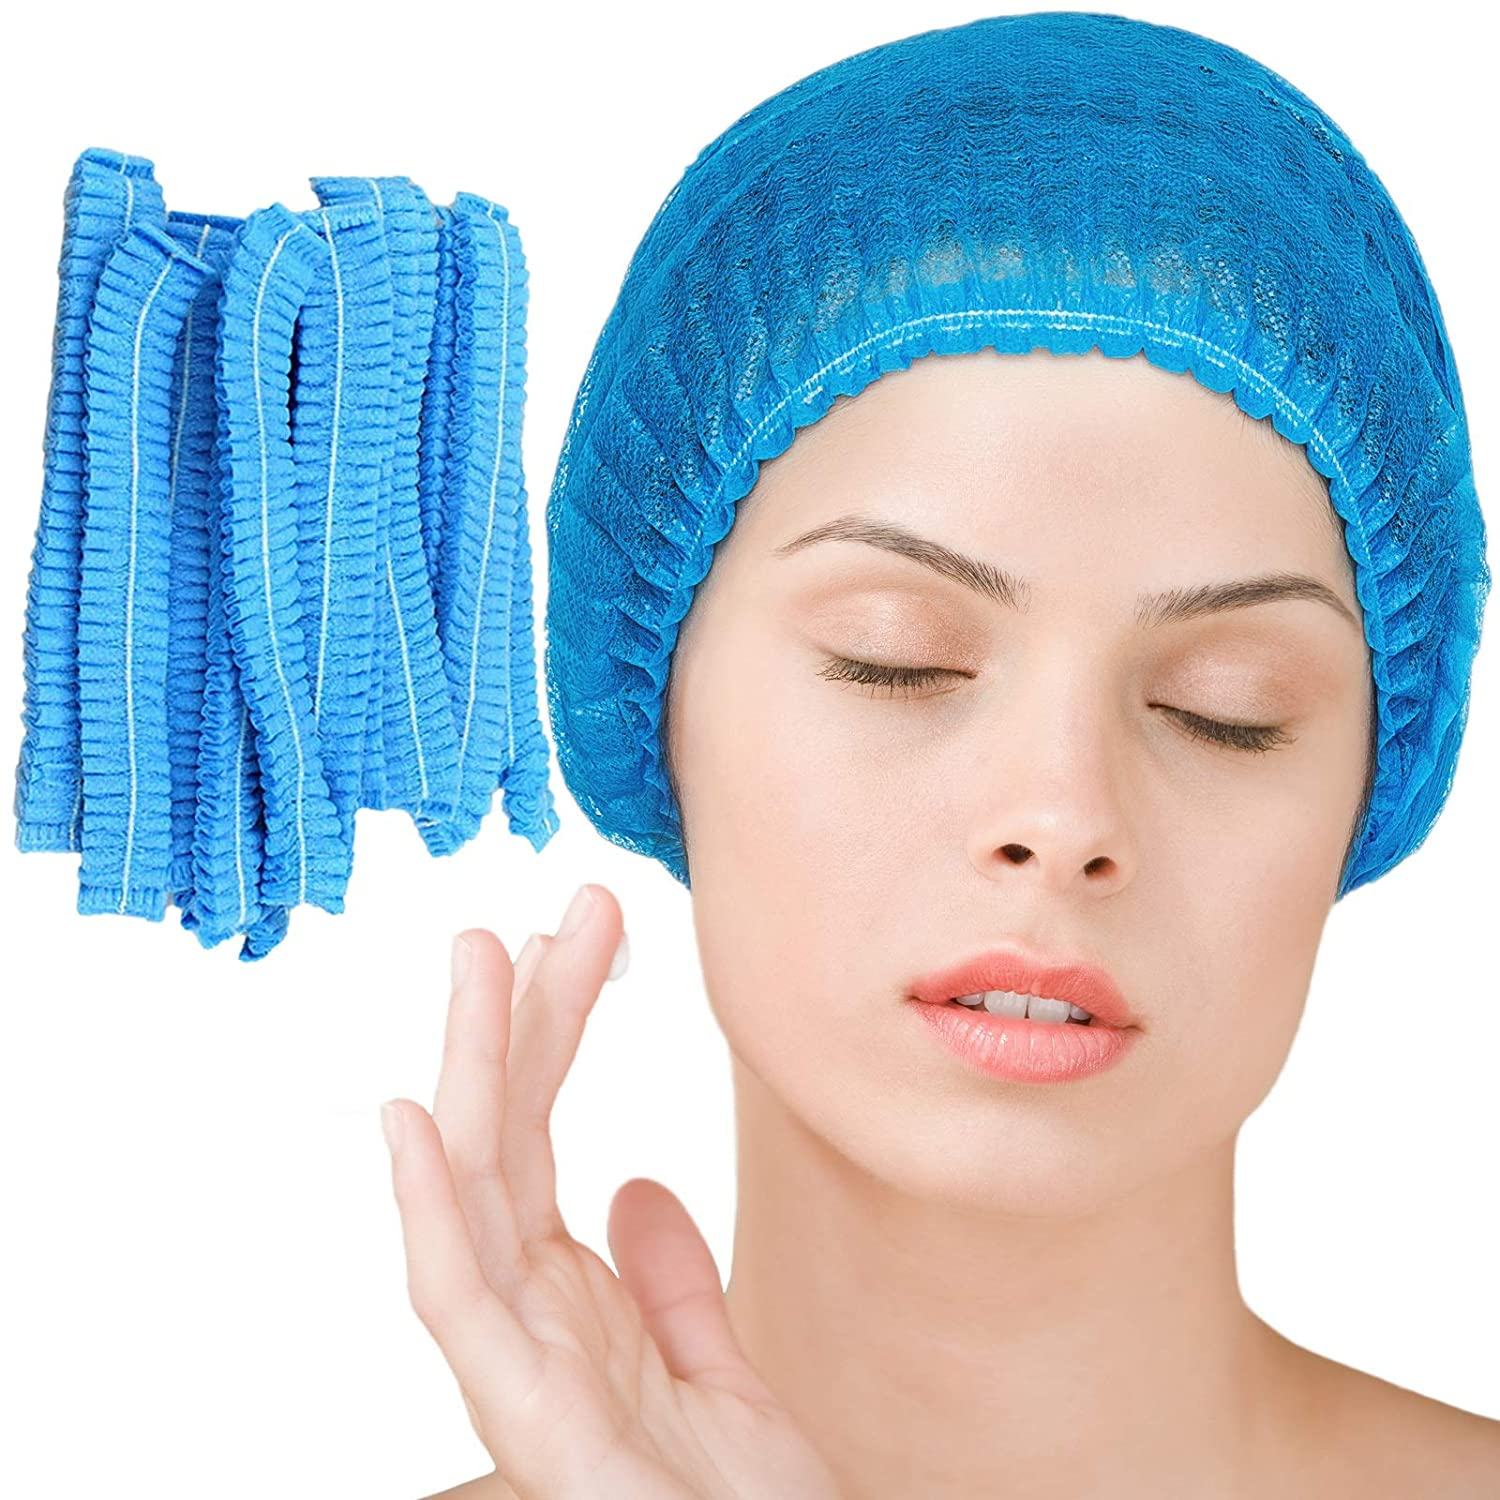 Disposable Bouffant Caps 100 Pcs (Blue),21inches Hair Net, Elastic Dust Cap for Food Service, Sleeping Head Cover, Medical